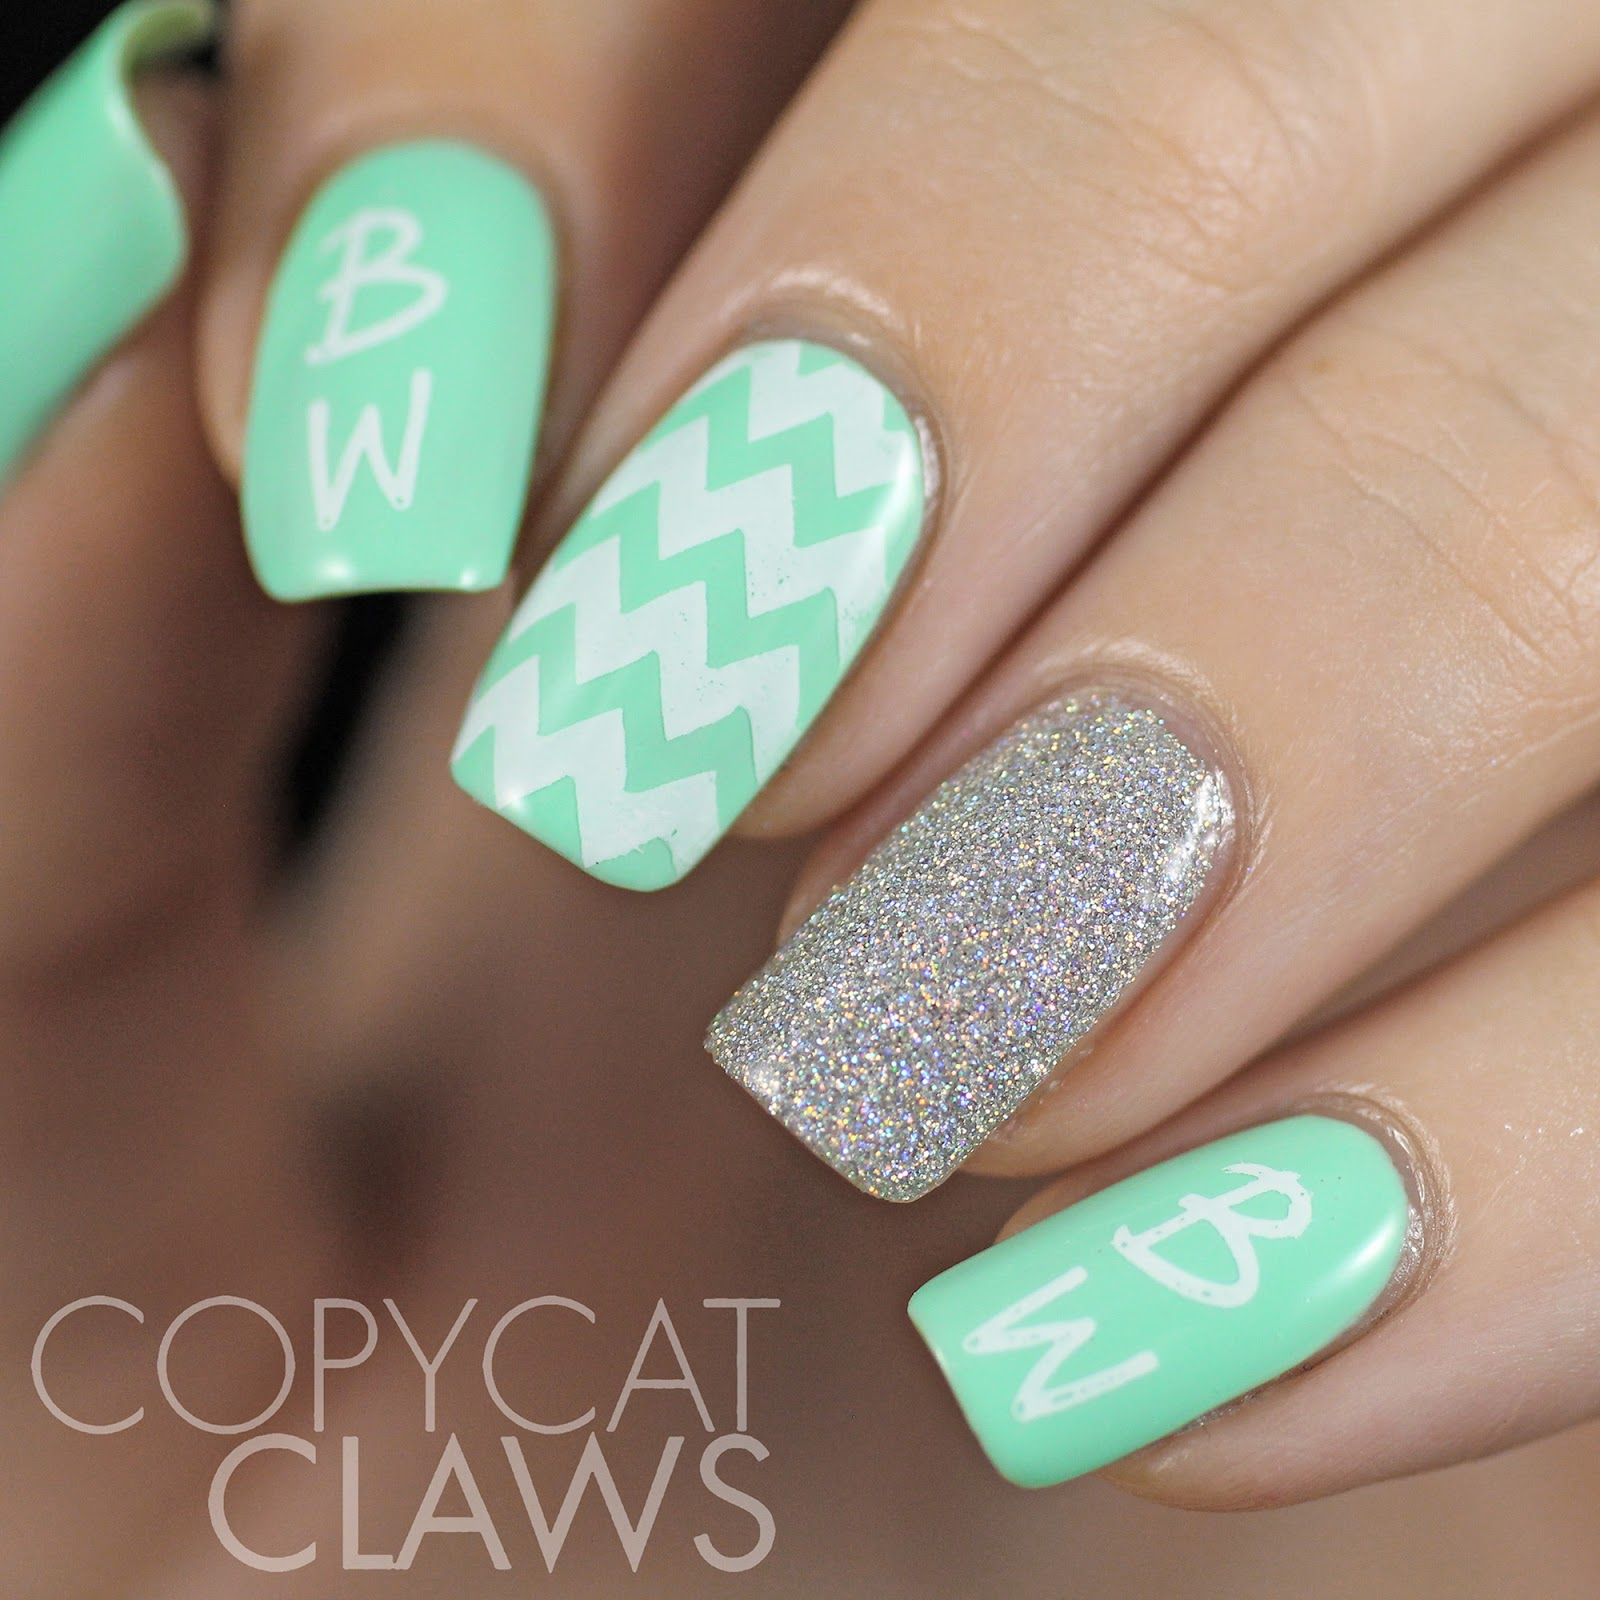 Copycat Claws: Sunday Stamping - Things I\'m Thankful For